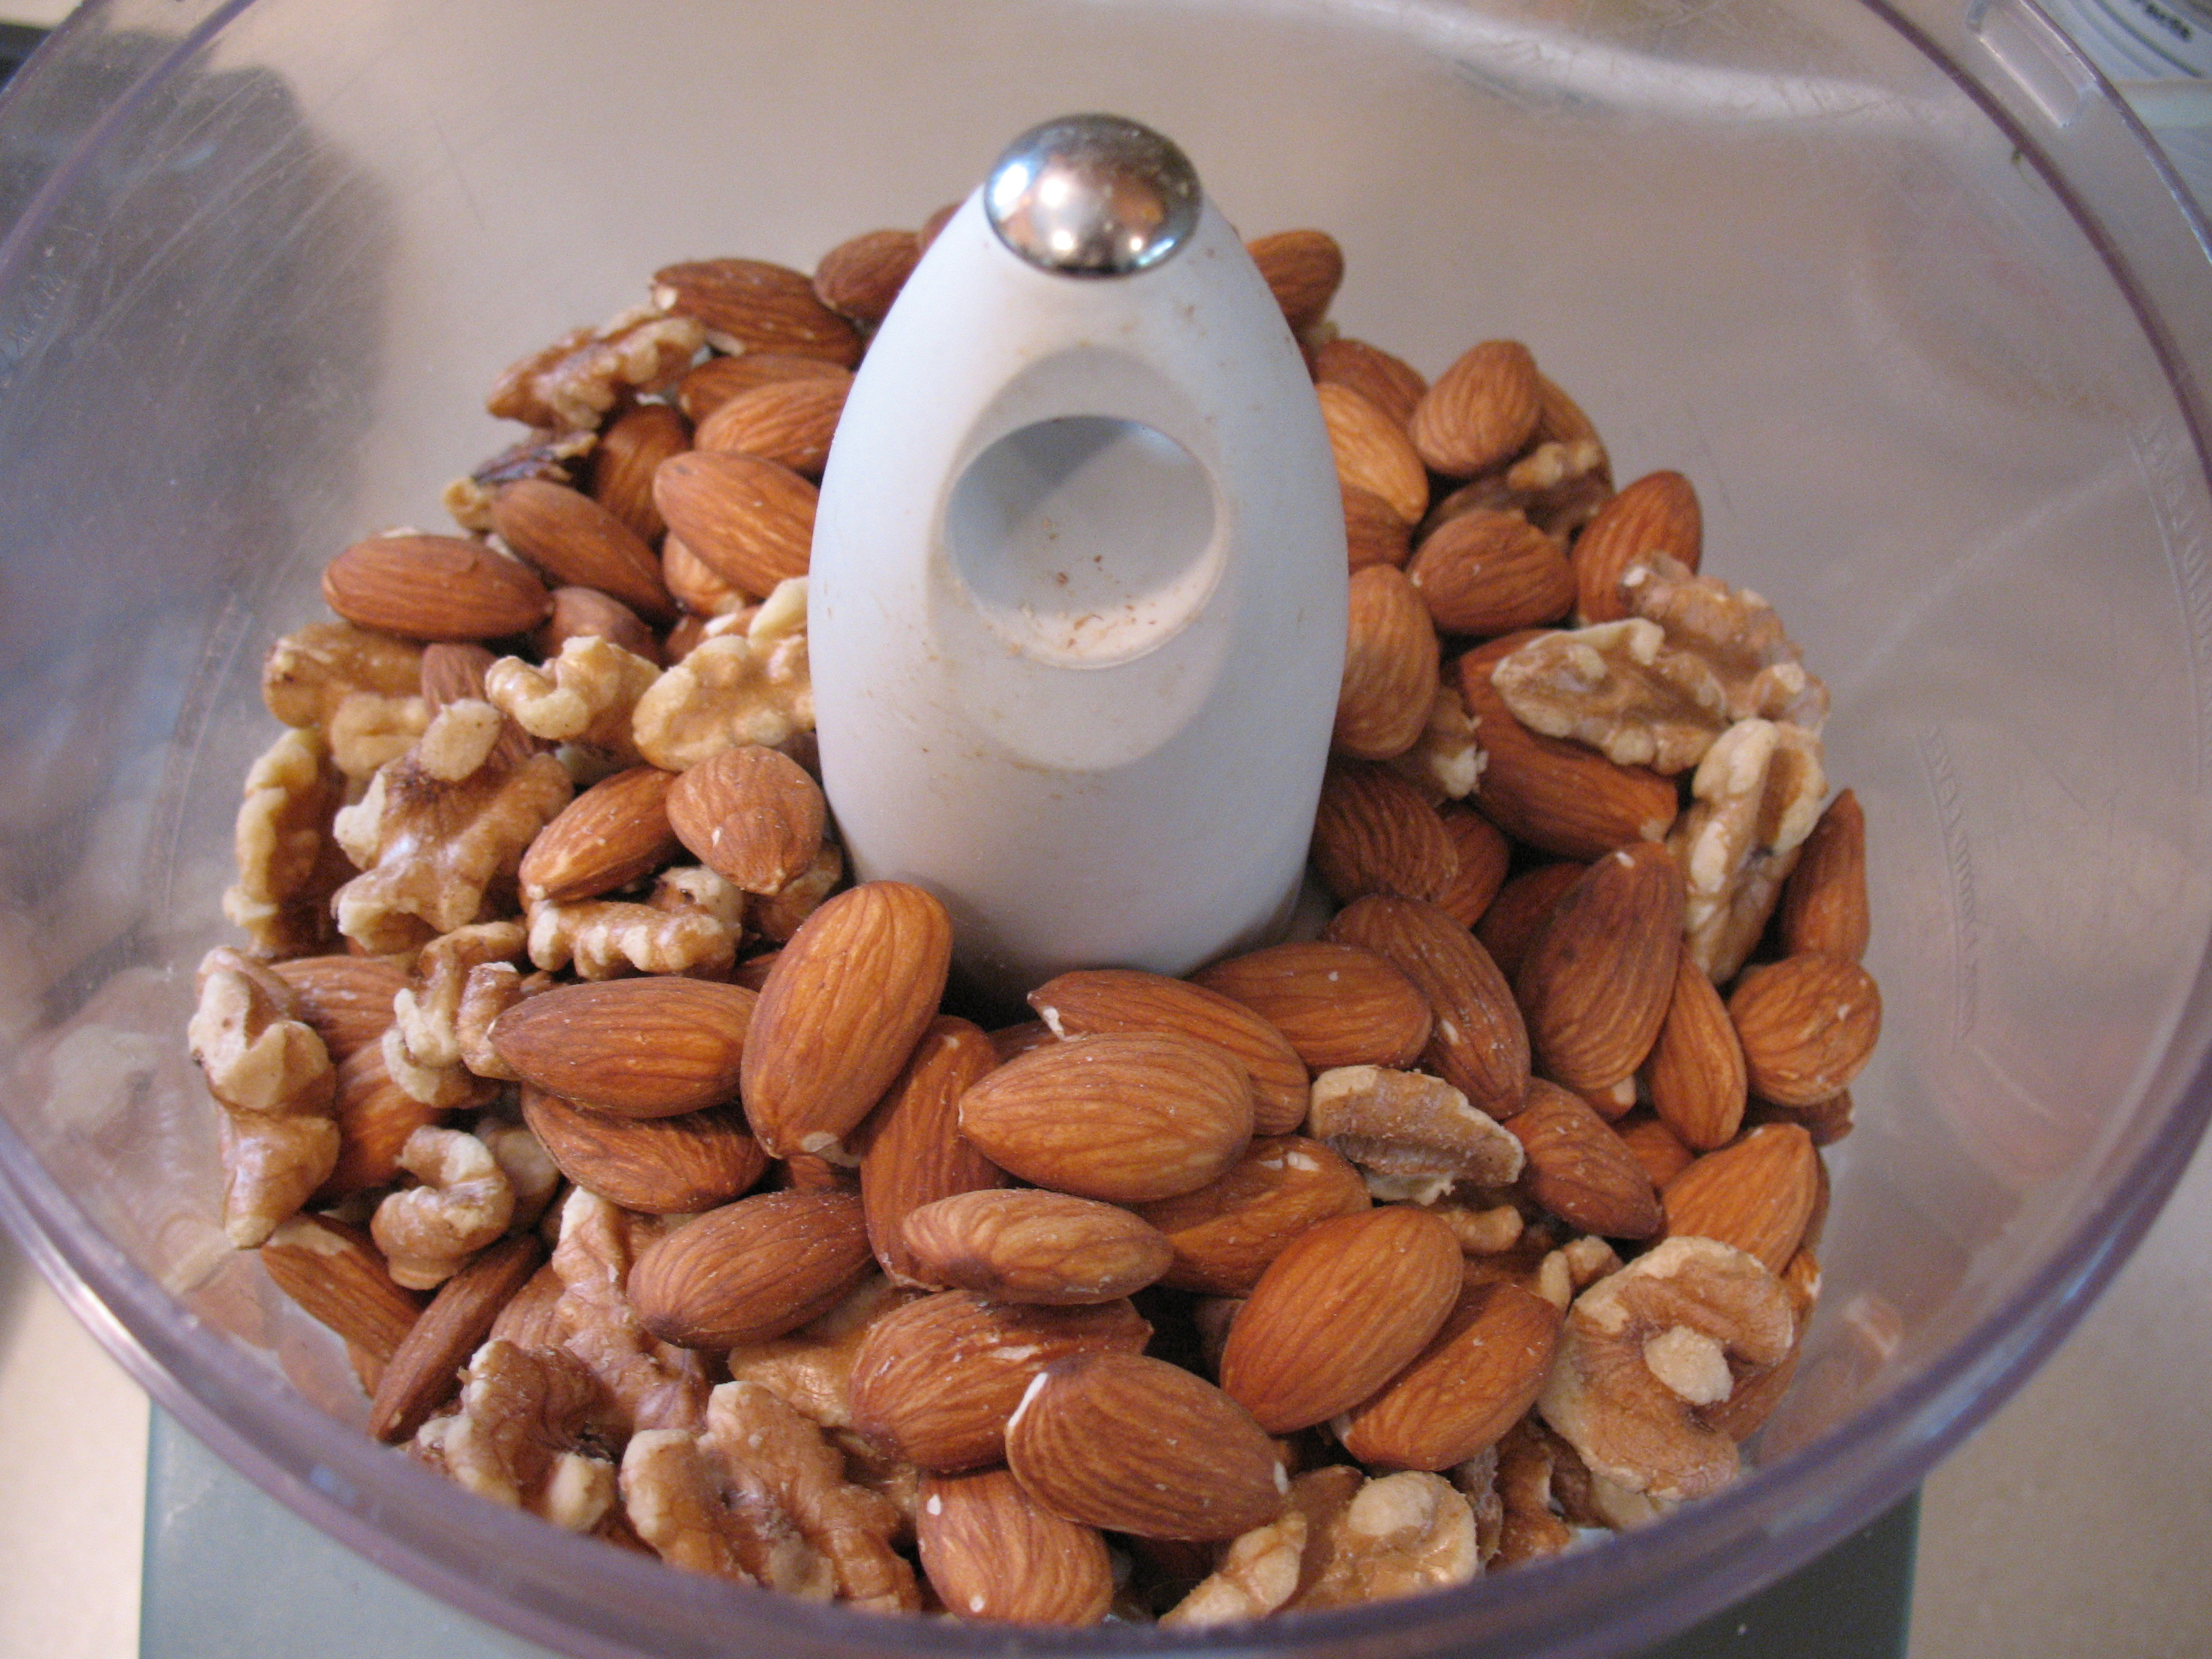 Roasted almonds and walnuts into the food processor.